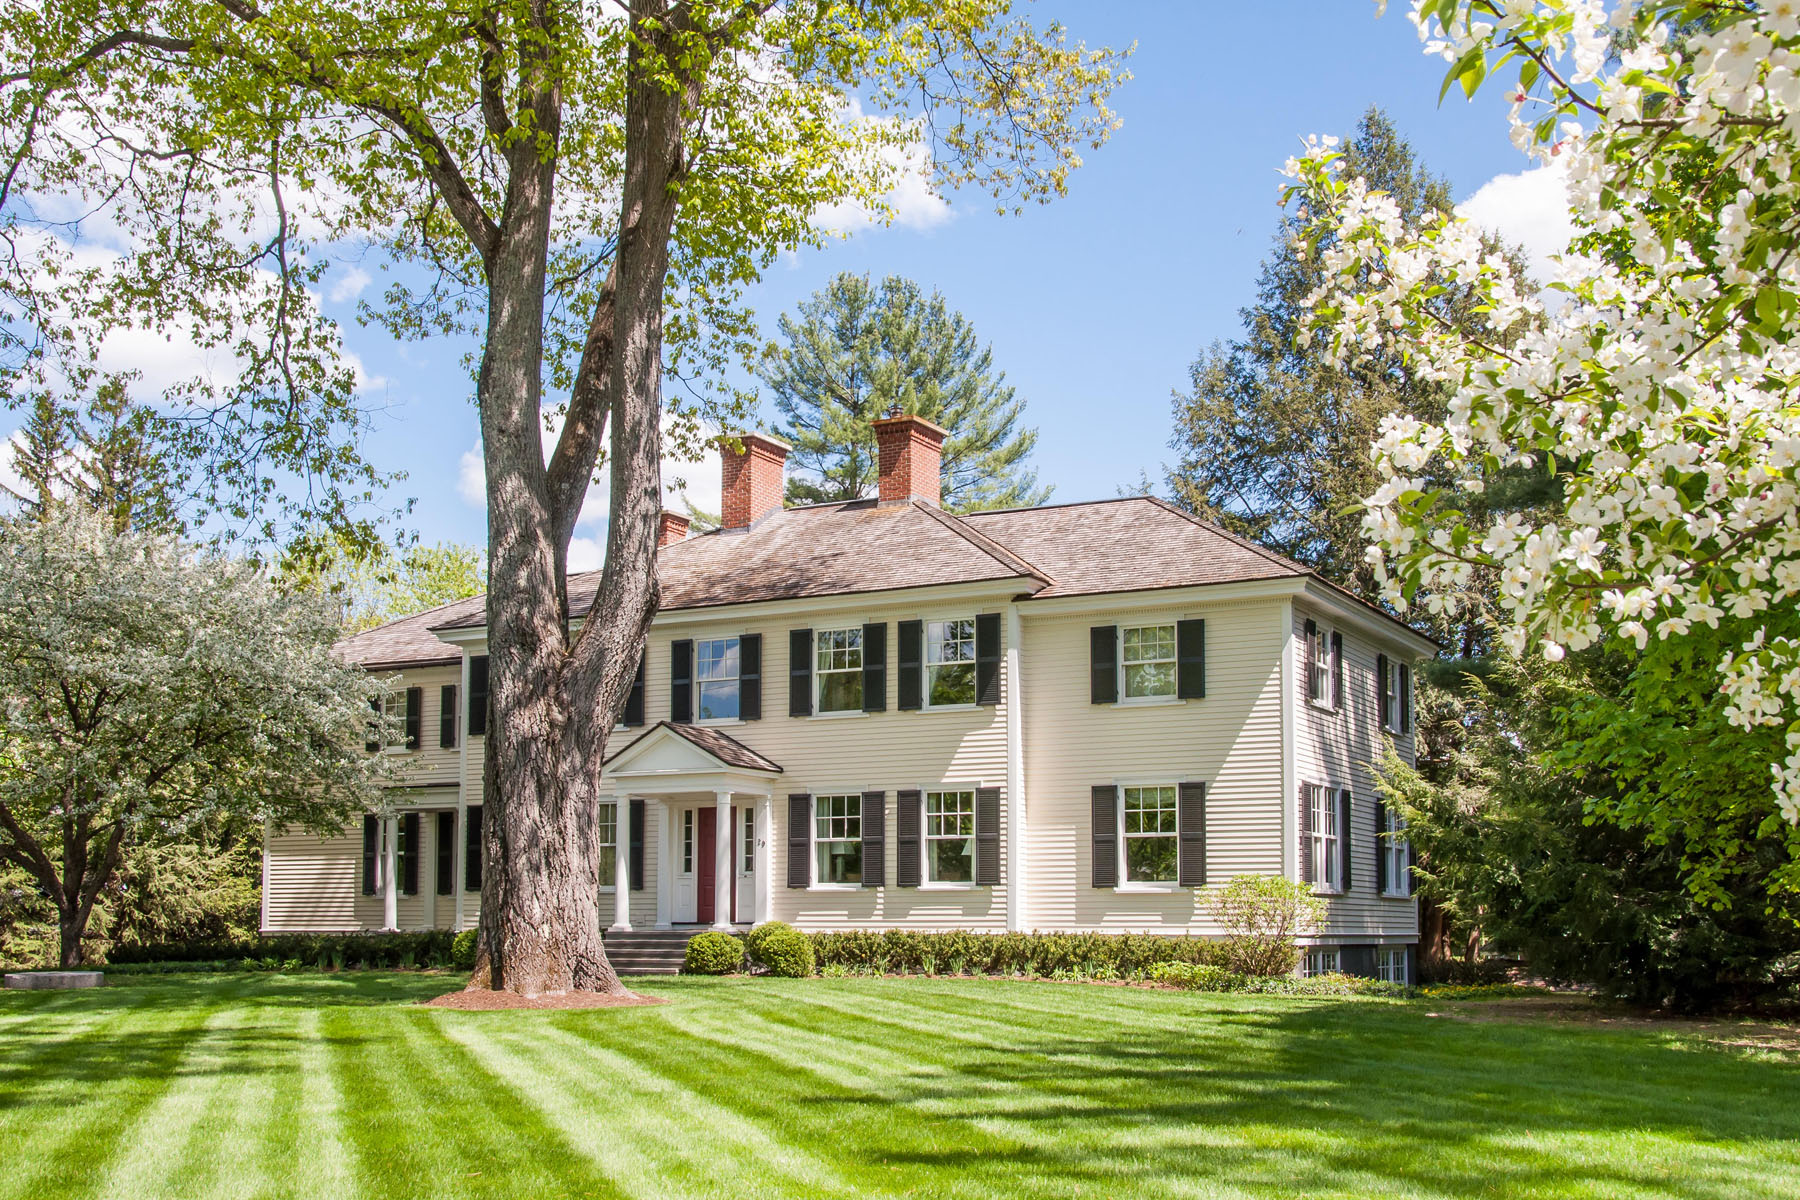 Single Family Home for Sale at Occom Pond Estate 29 Rope Ferry Rd Hanover, New Hampshire 03755 United States